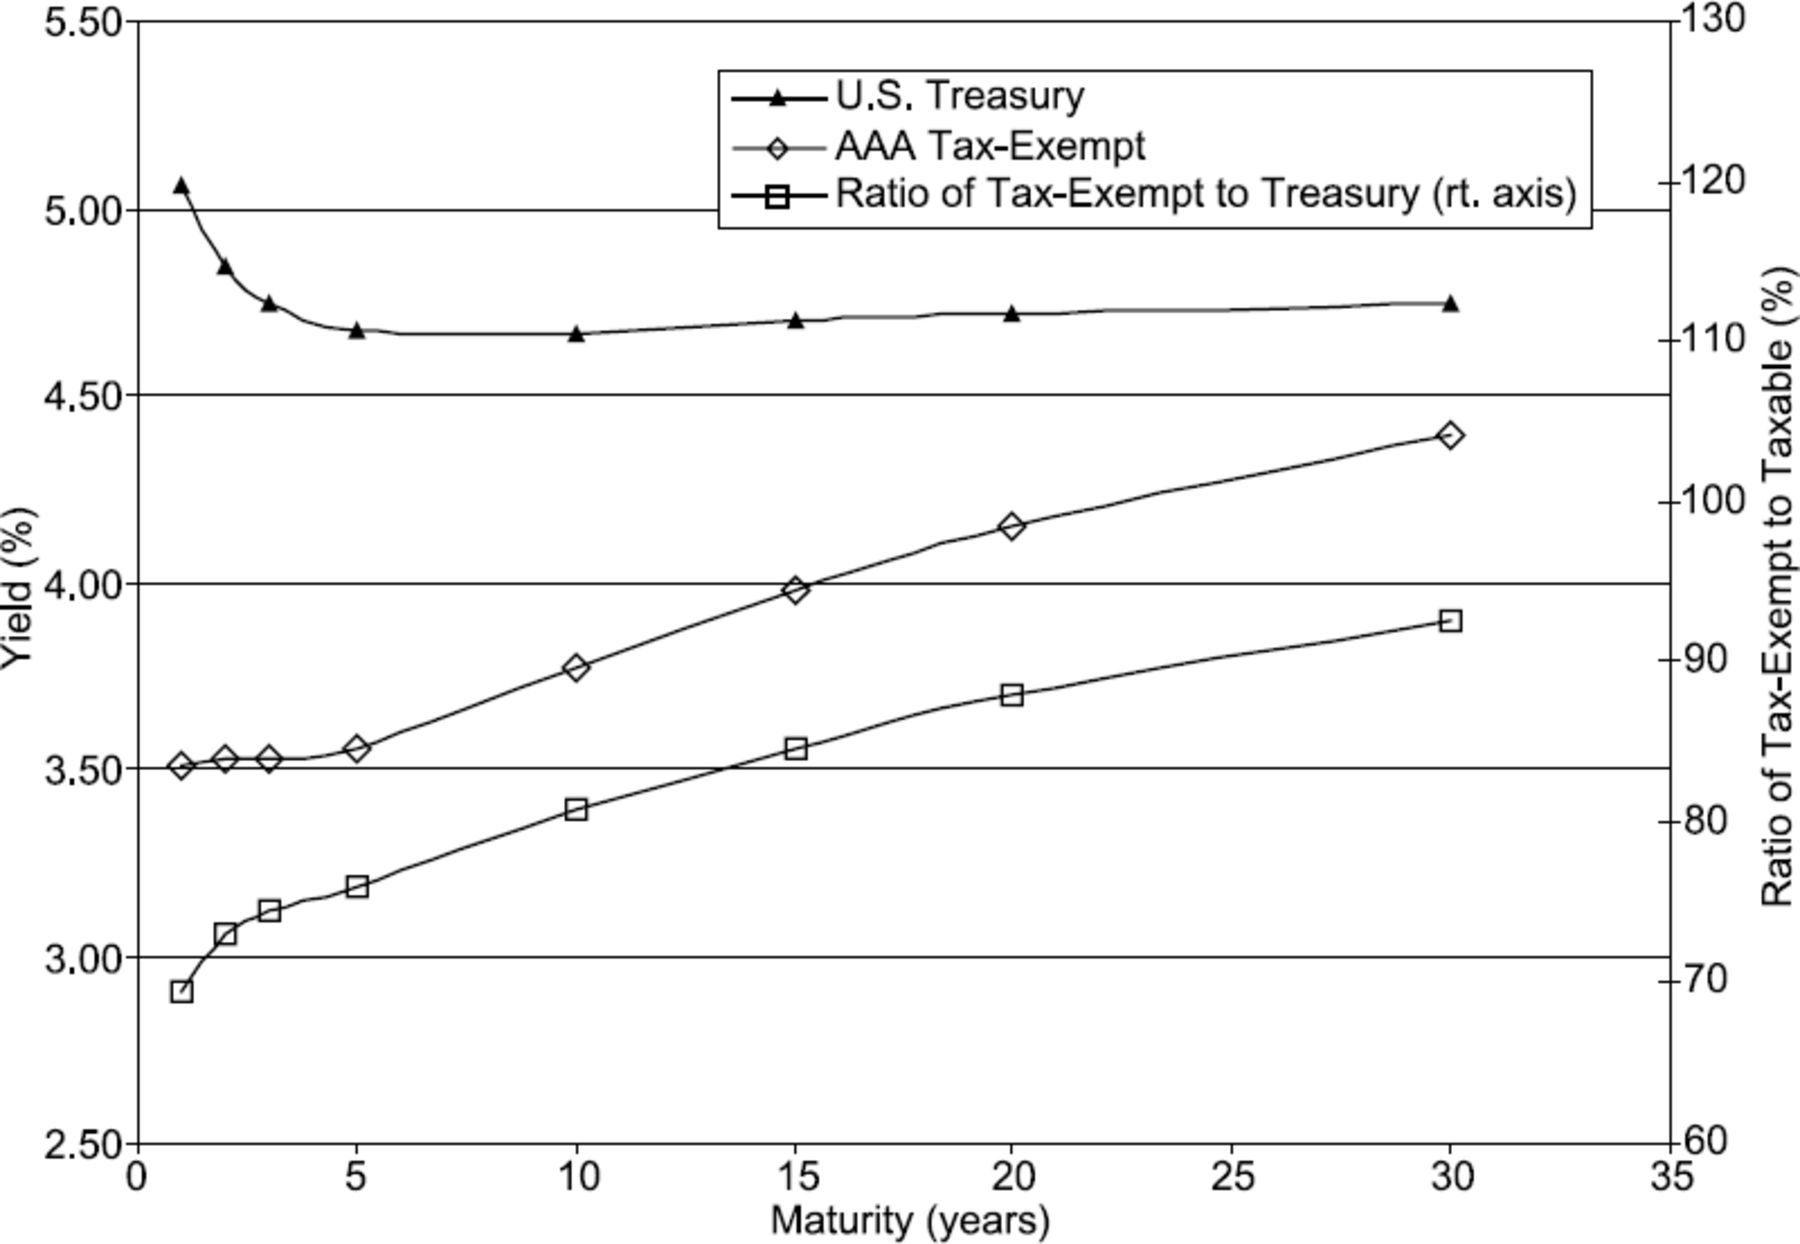 What Makes the Municipal Yield Curve Rise? | The Journal of